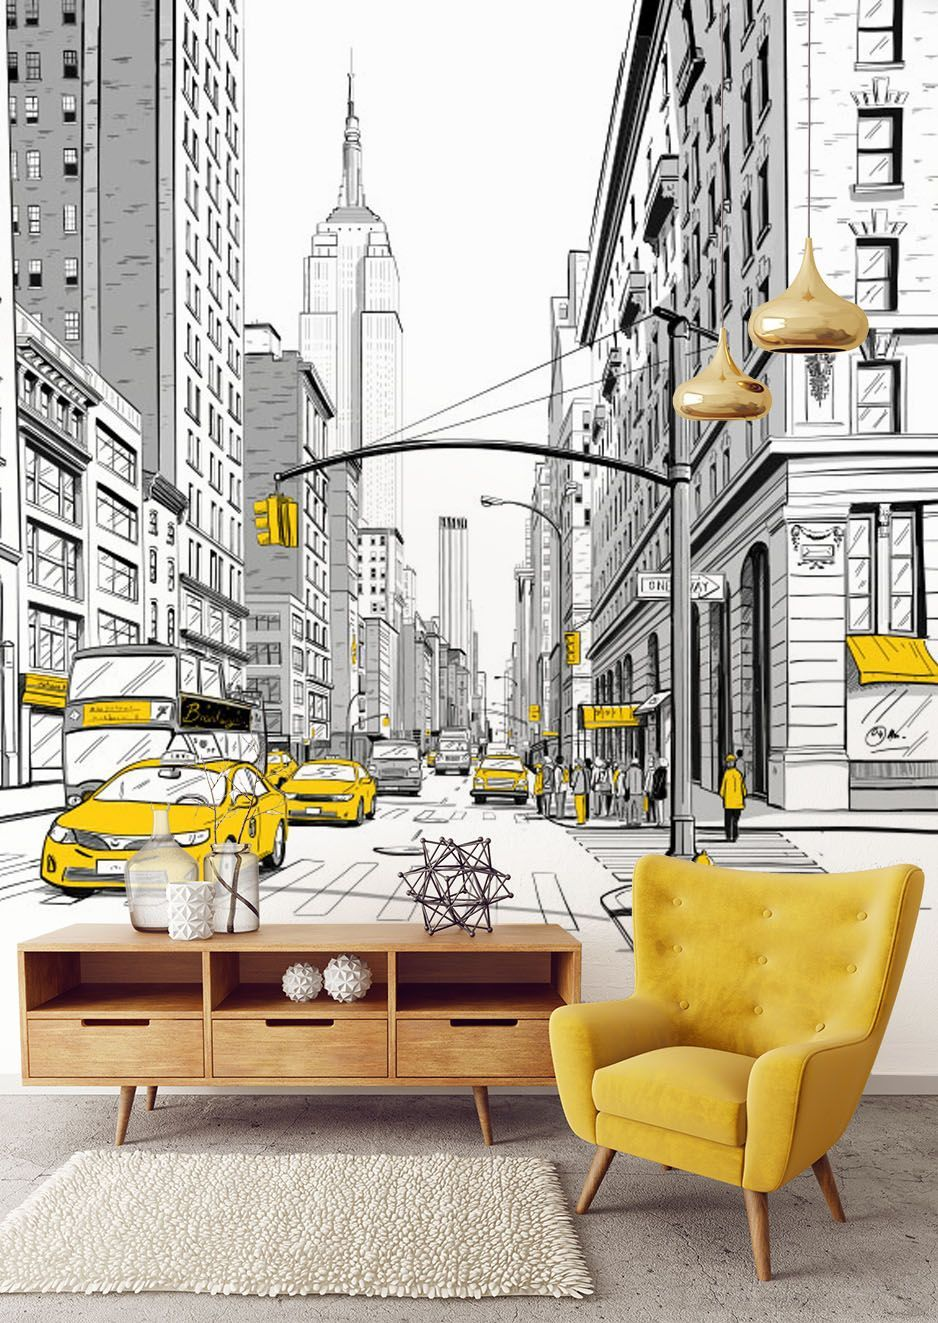 Paisaje Urbano Paisajeurbano The City Of New York Is One Of The Most Reproduced Images In The World Of Murals We Pres Nyc Murals Mural Wallpaper Modern Mural